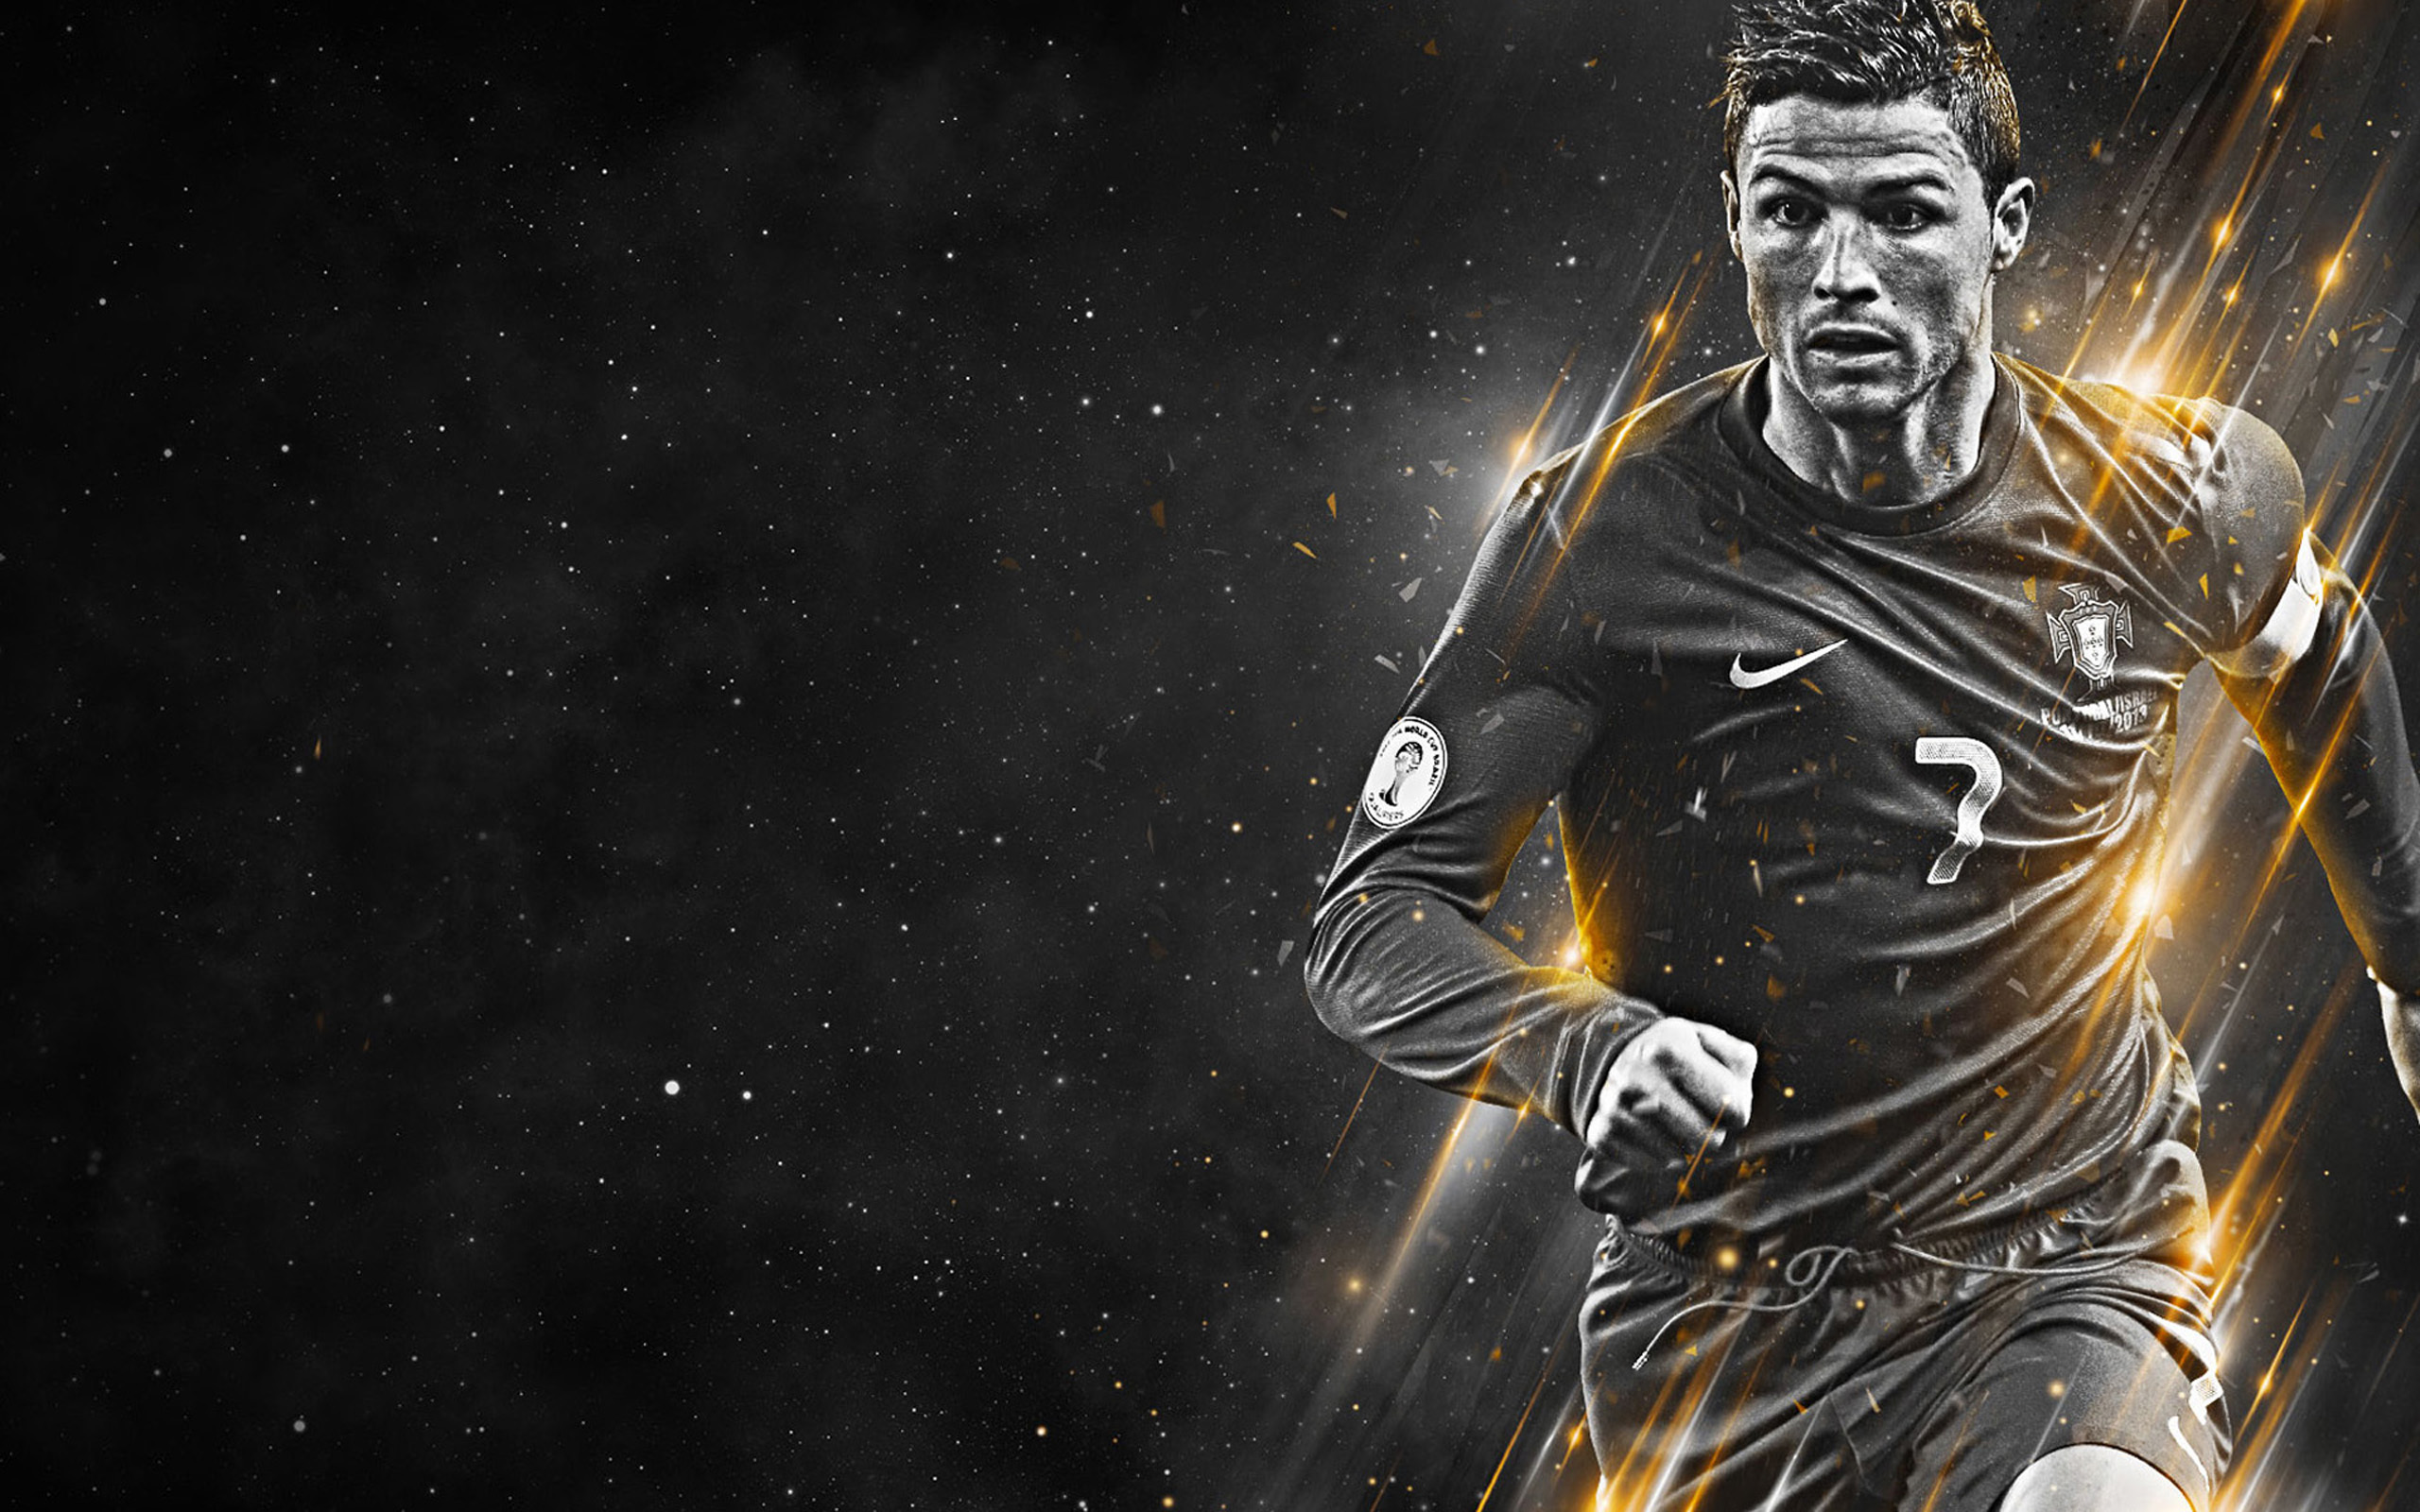 Background Images Wallpaper Abyss: 20 Cristiano Ronaldo HD Wallpapers